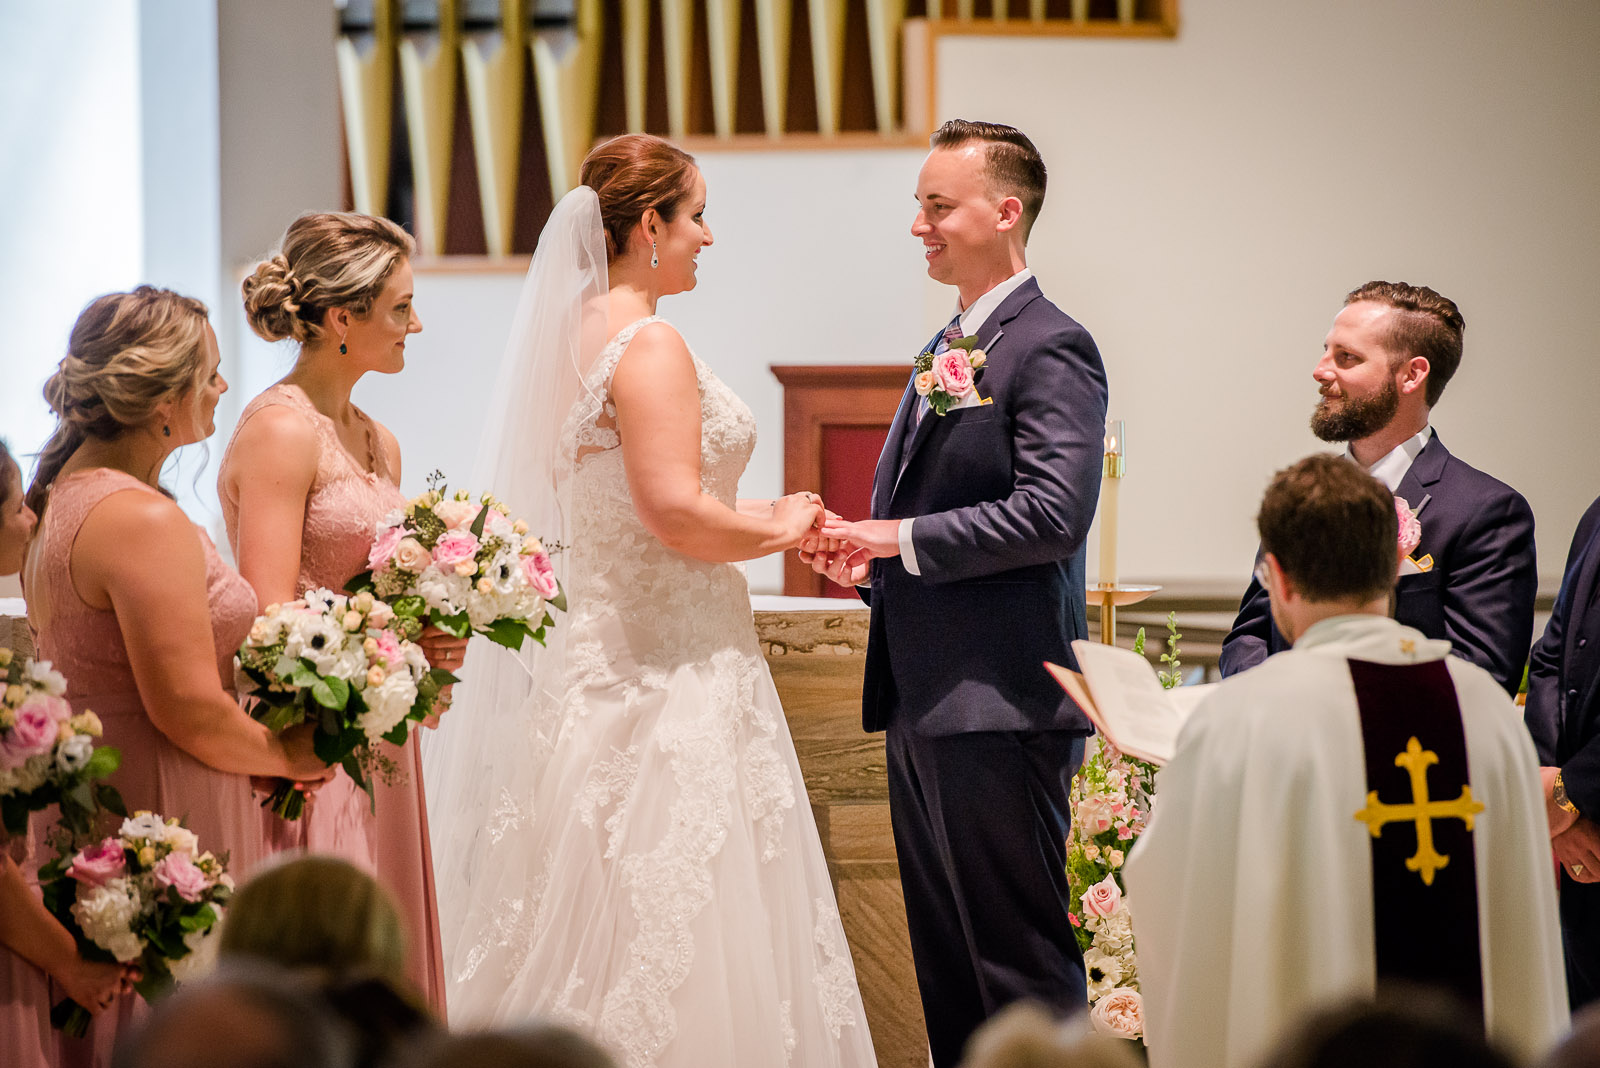 Eric_and_Christy_Photography_Blog_Wedding_Paige_Eric-15